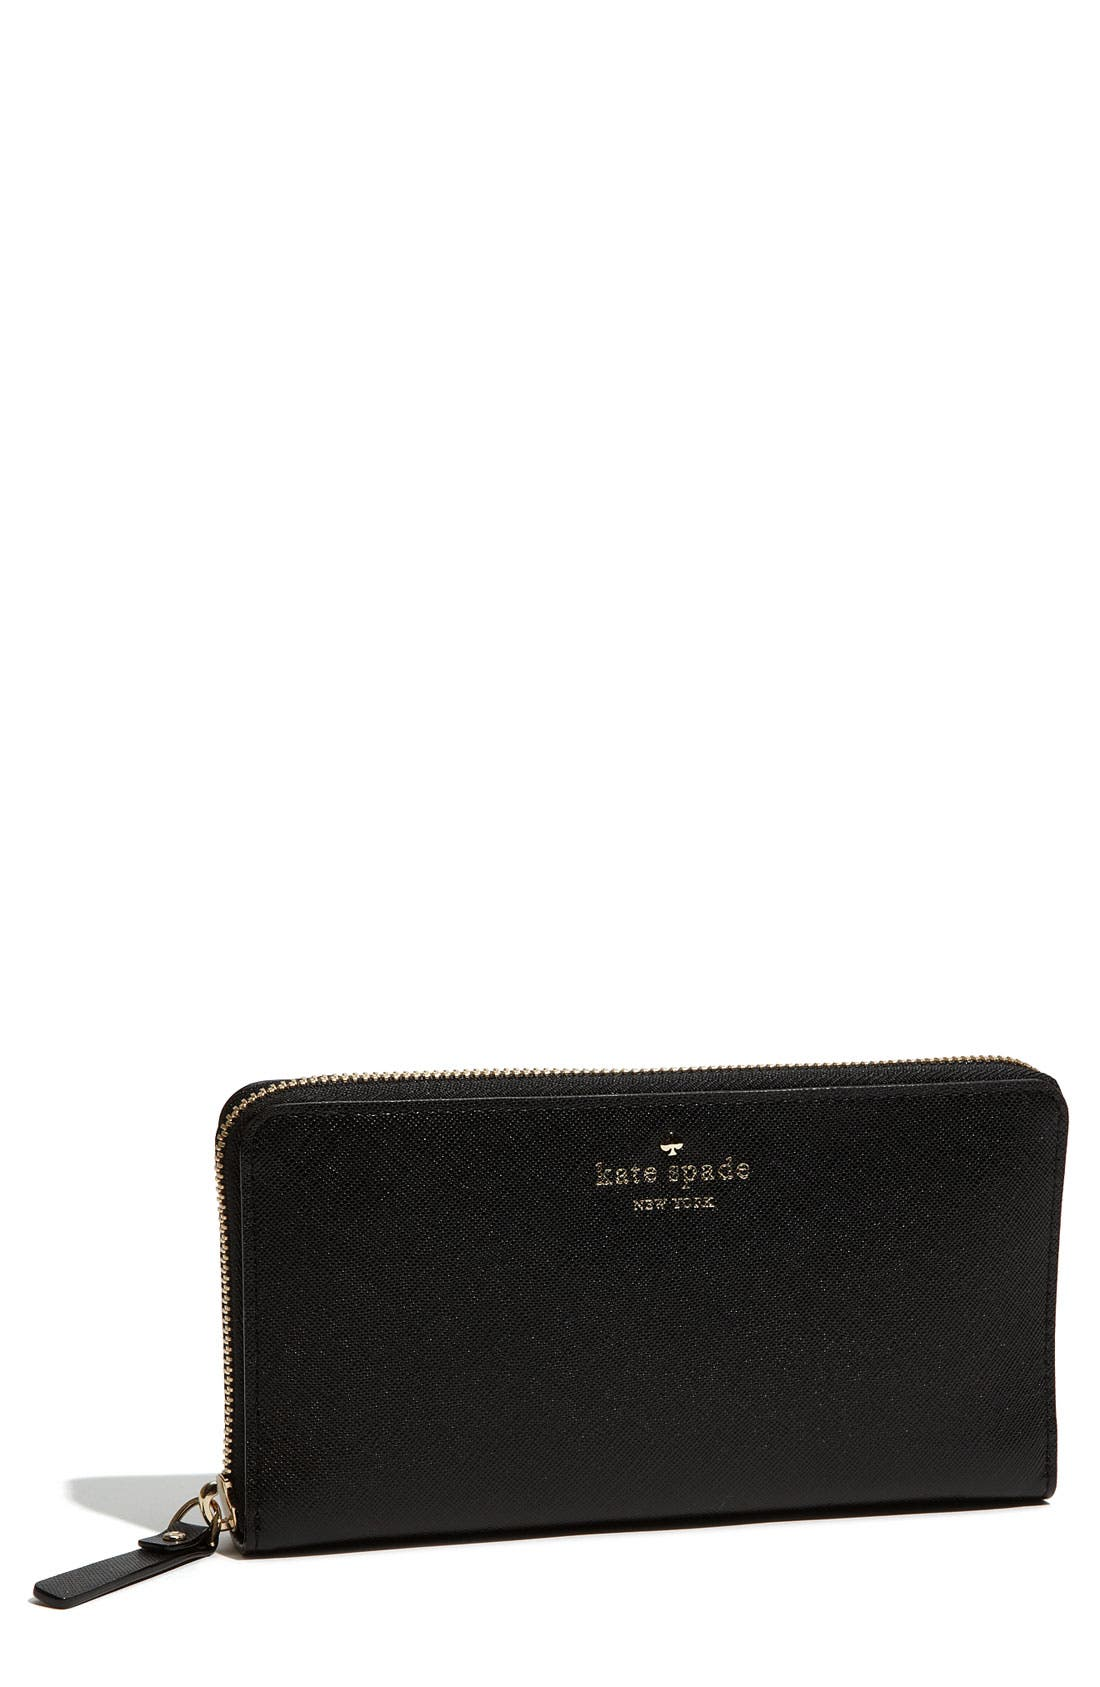 'mikas pond - lacey' zip around wallet,                             Main thumbnail 1, color,                             001